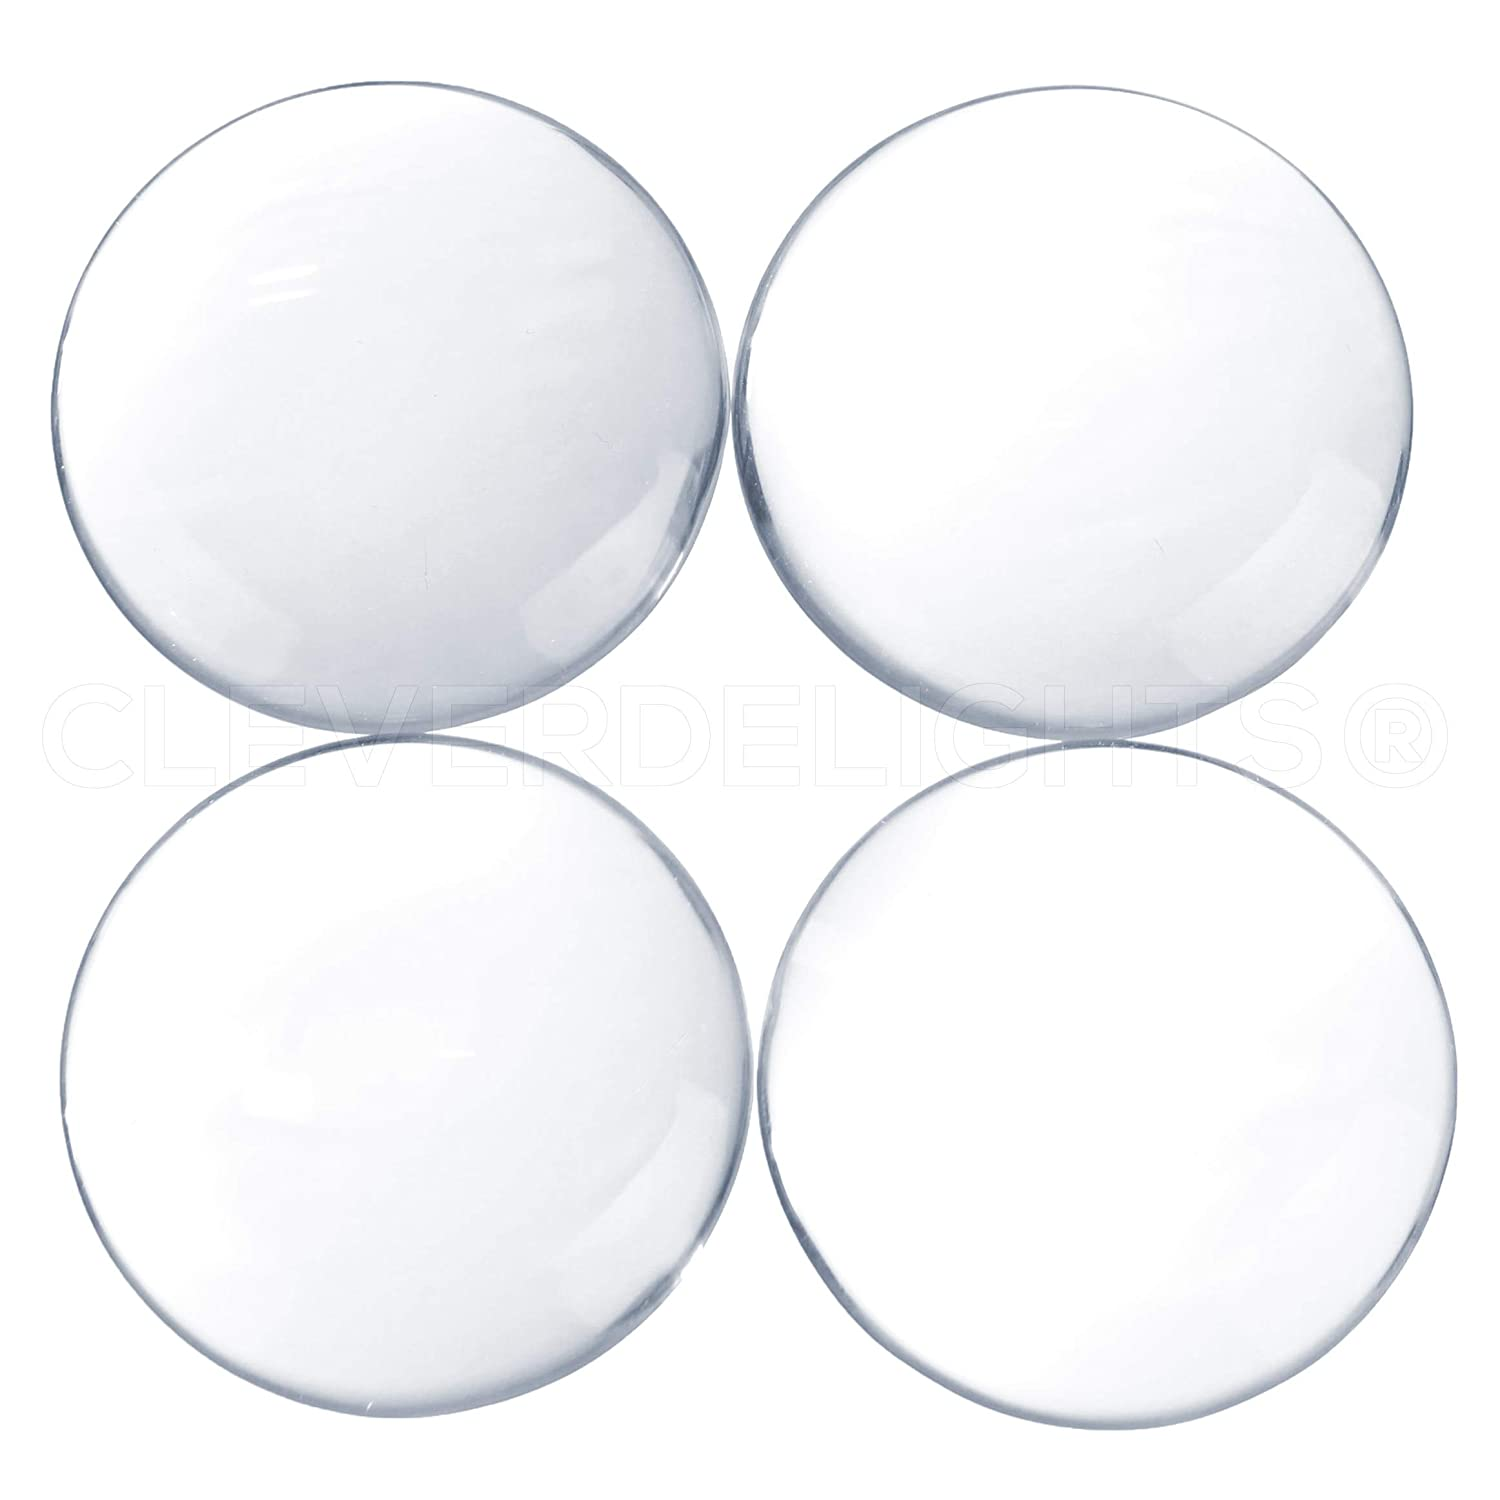 CleverDelights 10 40mm Round Glass Cabochons - 1 9/16' Inch - Clear Magnifying Cabs - Dome Pendant Cab - for Cameo Pendants, Photo Jewelry, Rings, Necklaces RoundCab-40mm-10